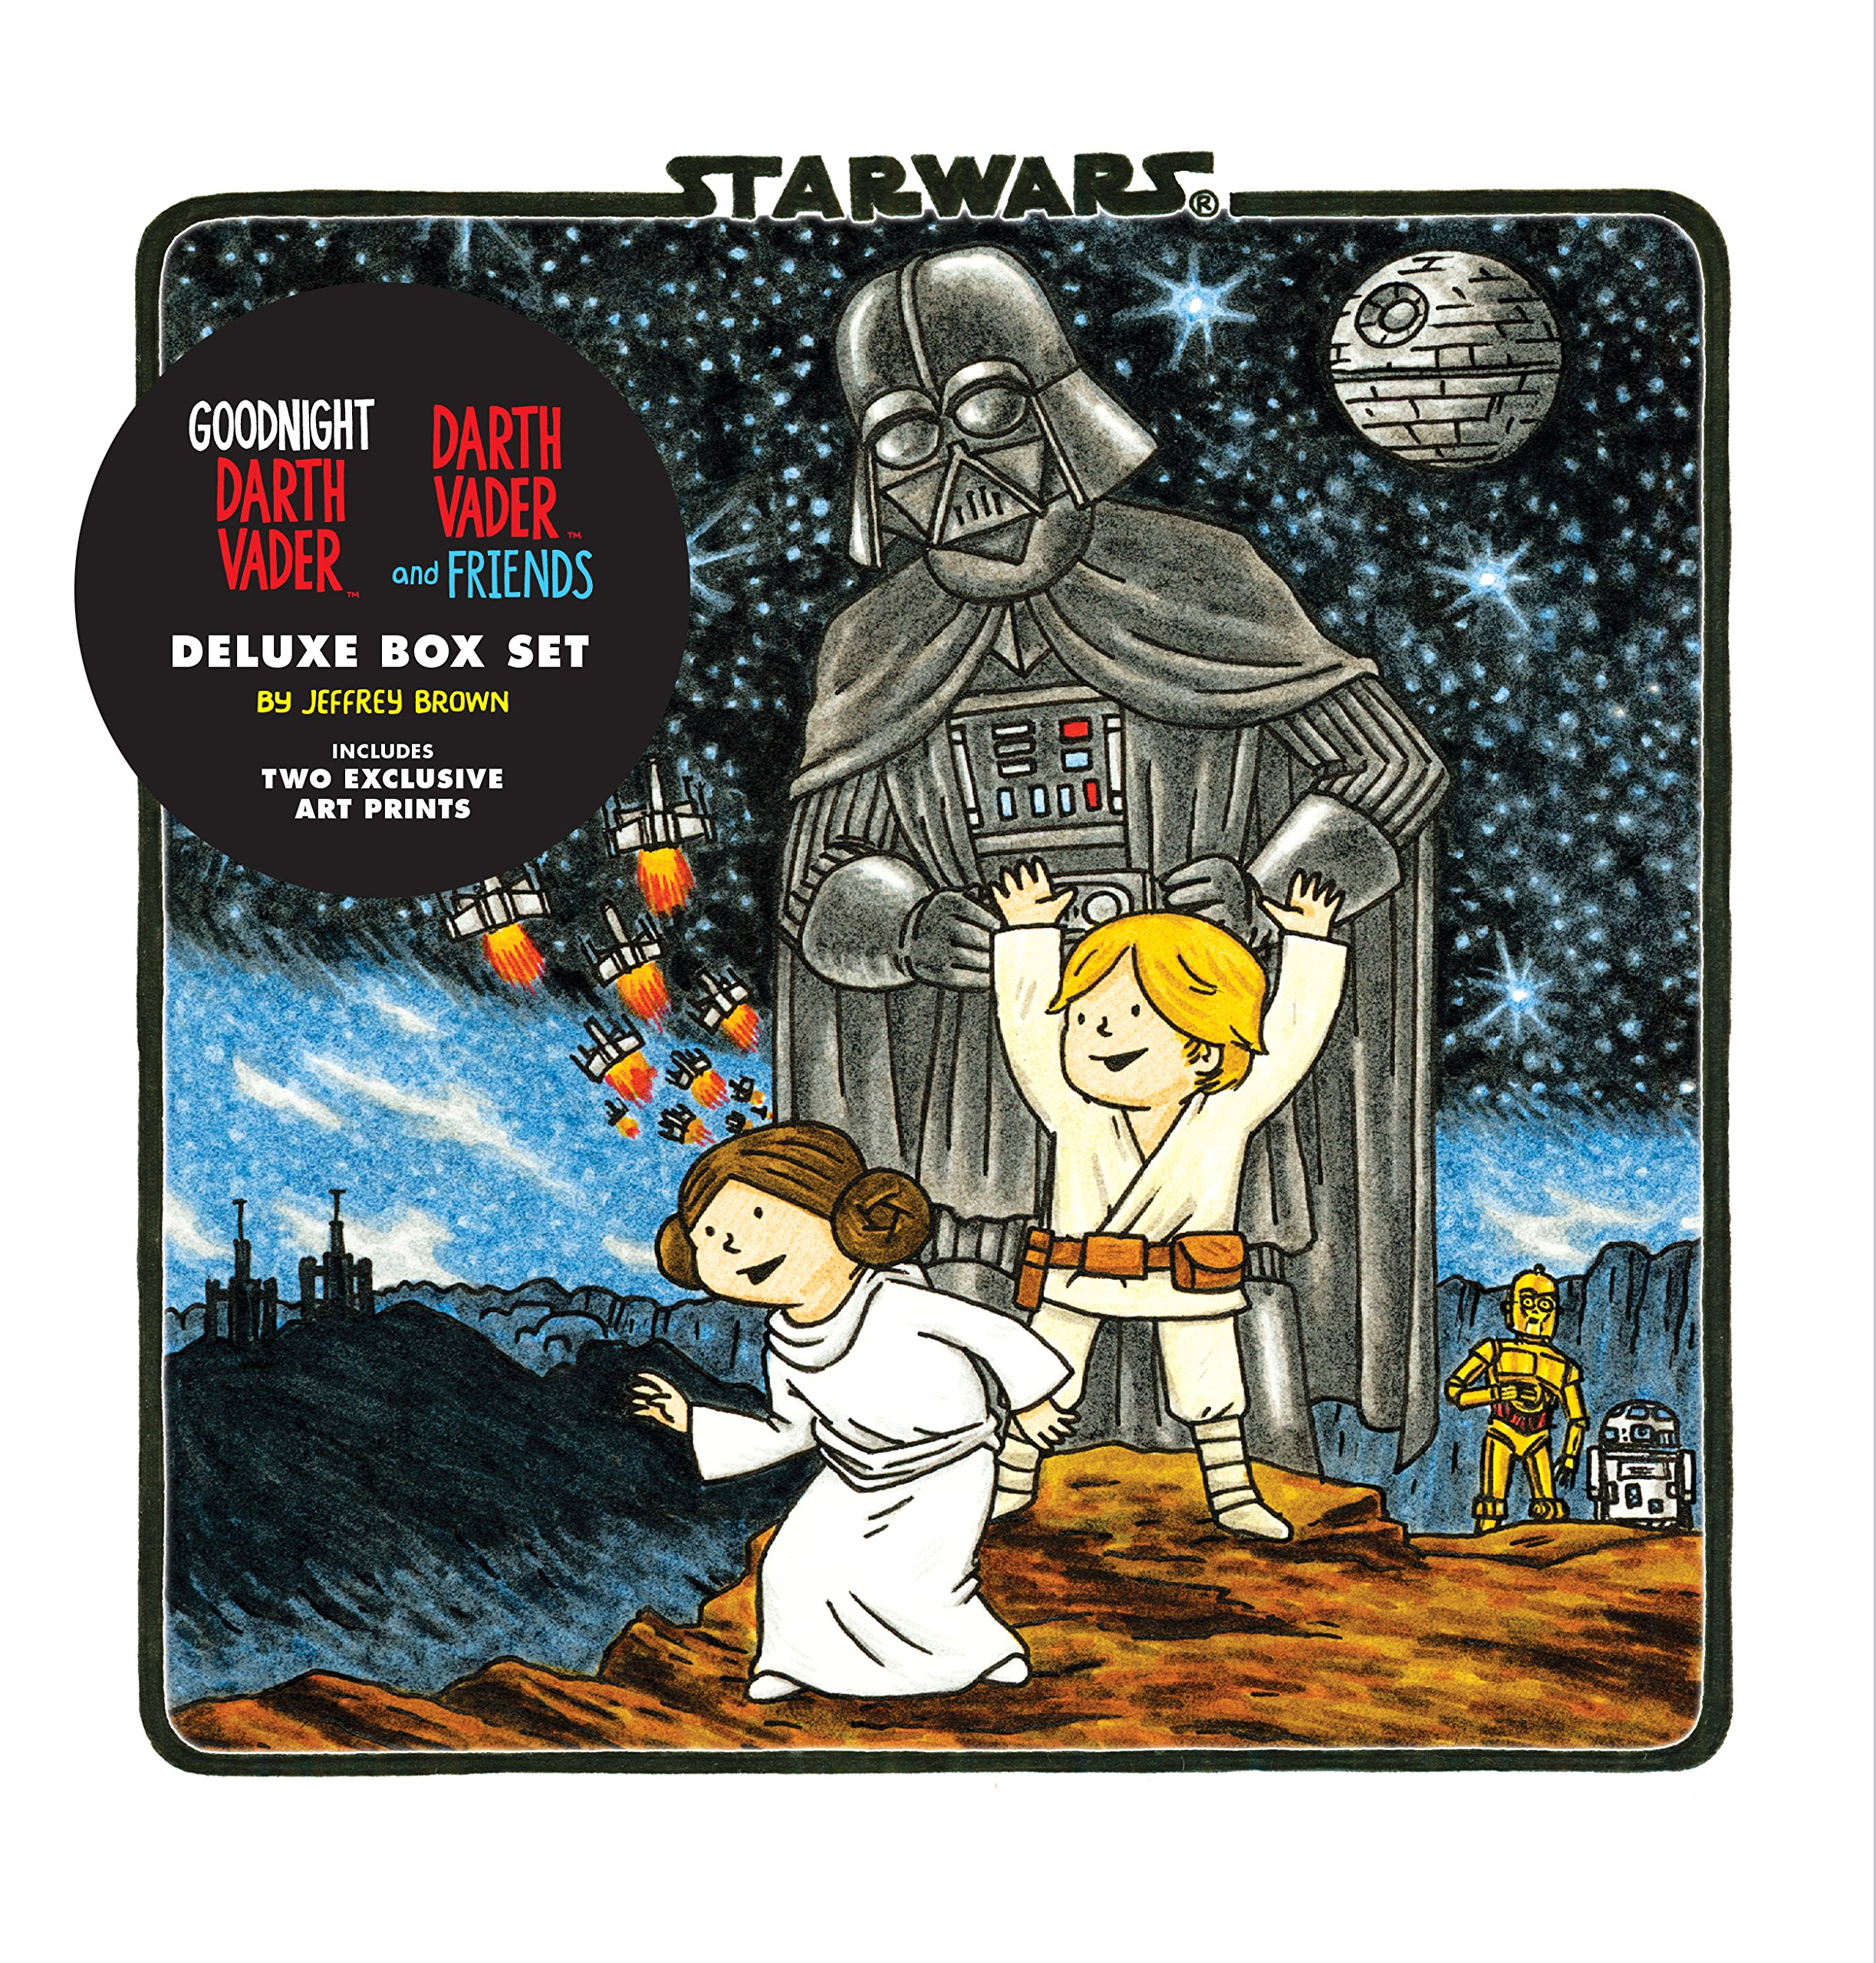 Star Wars Darth Vader and Son (Deluxe Boxed Set Edition)